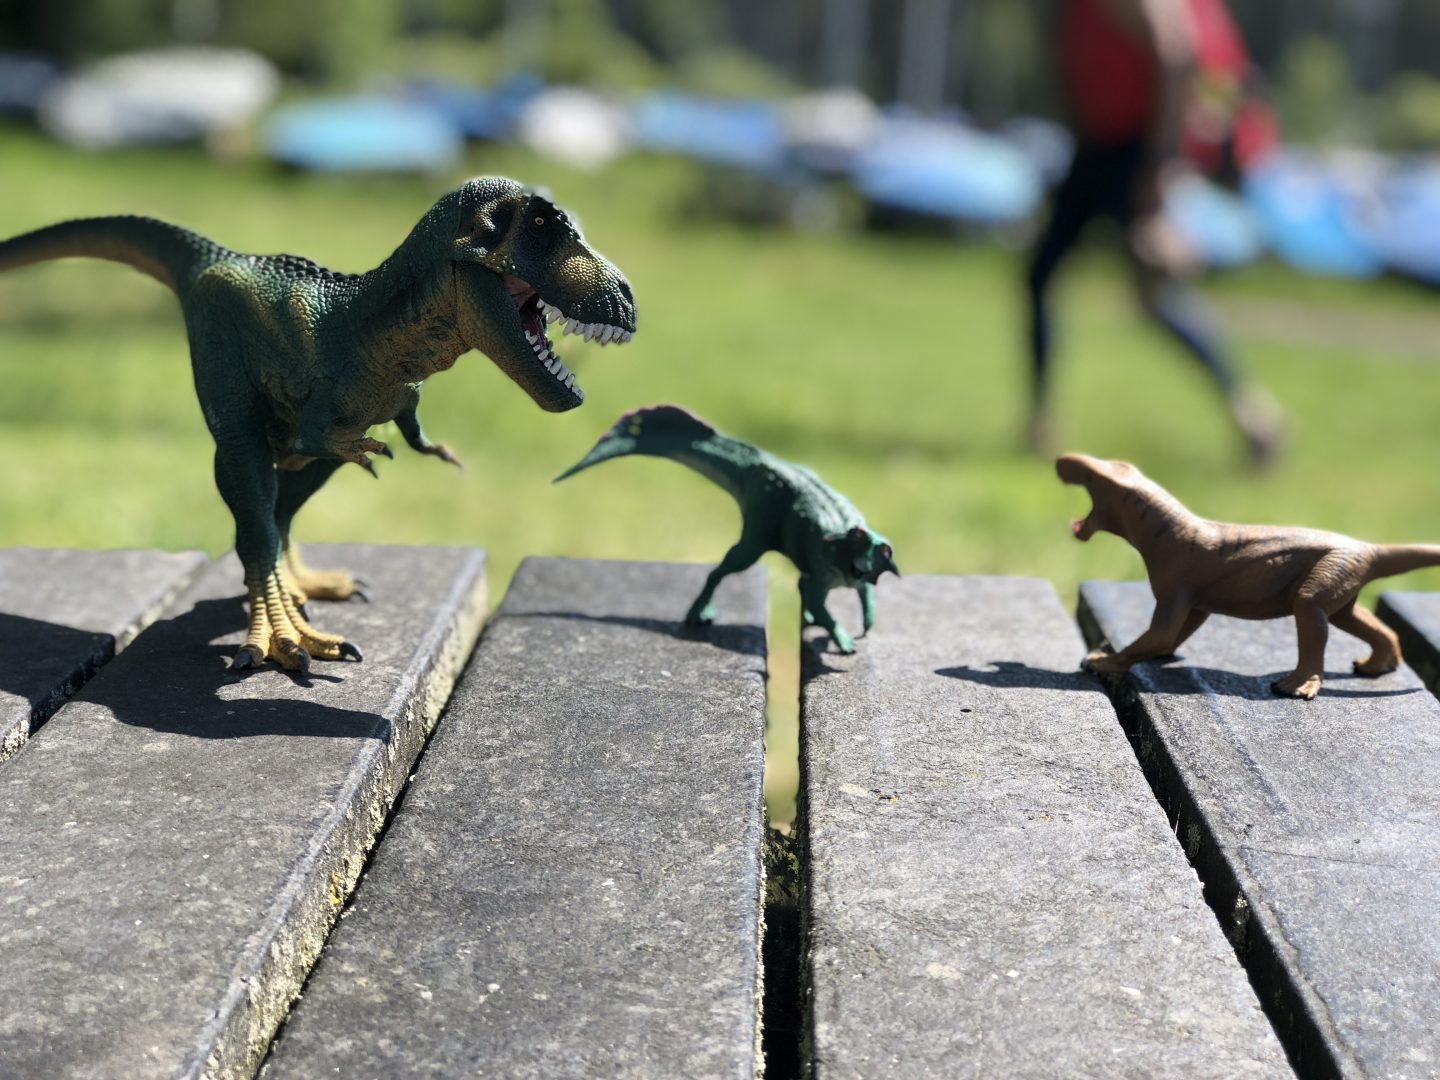 three dinosaurs fighting on a picnic table